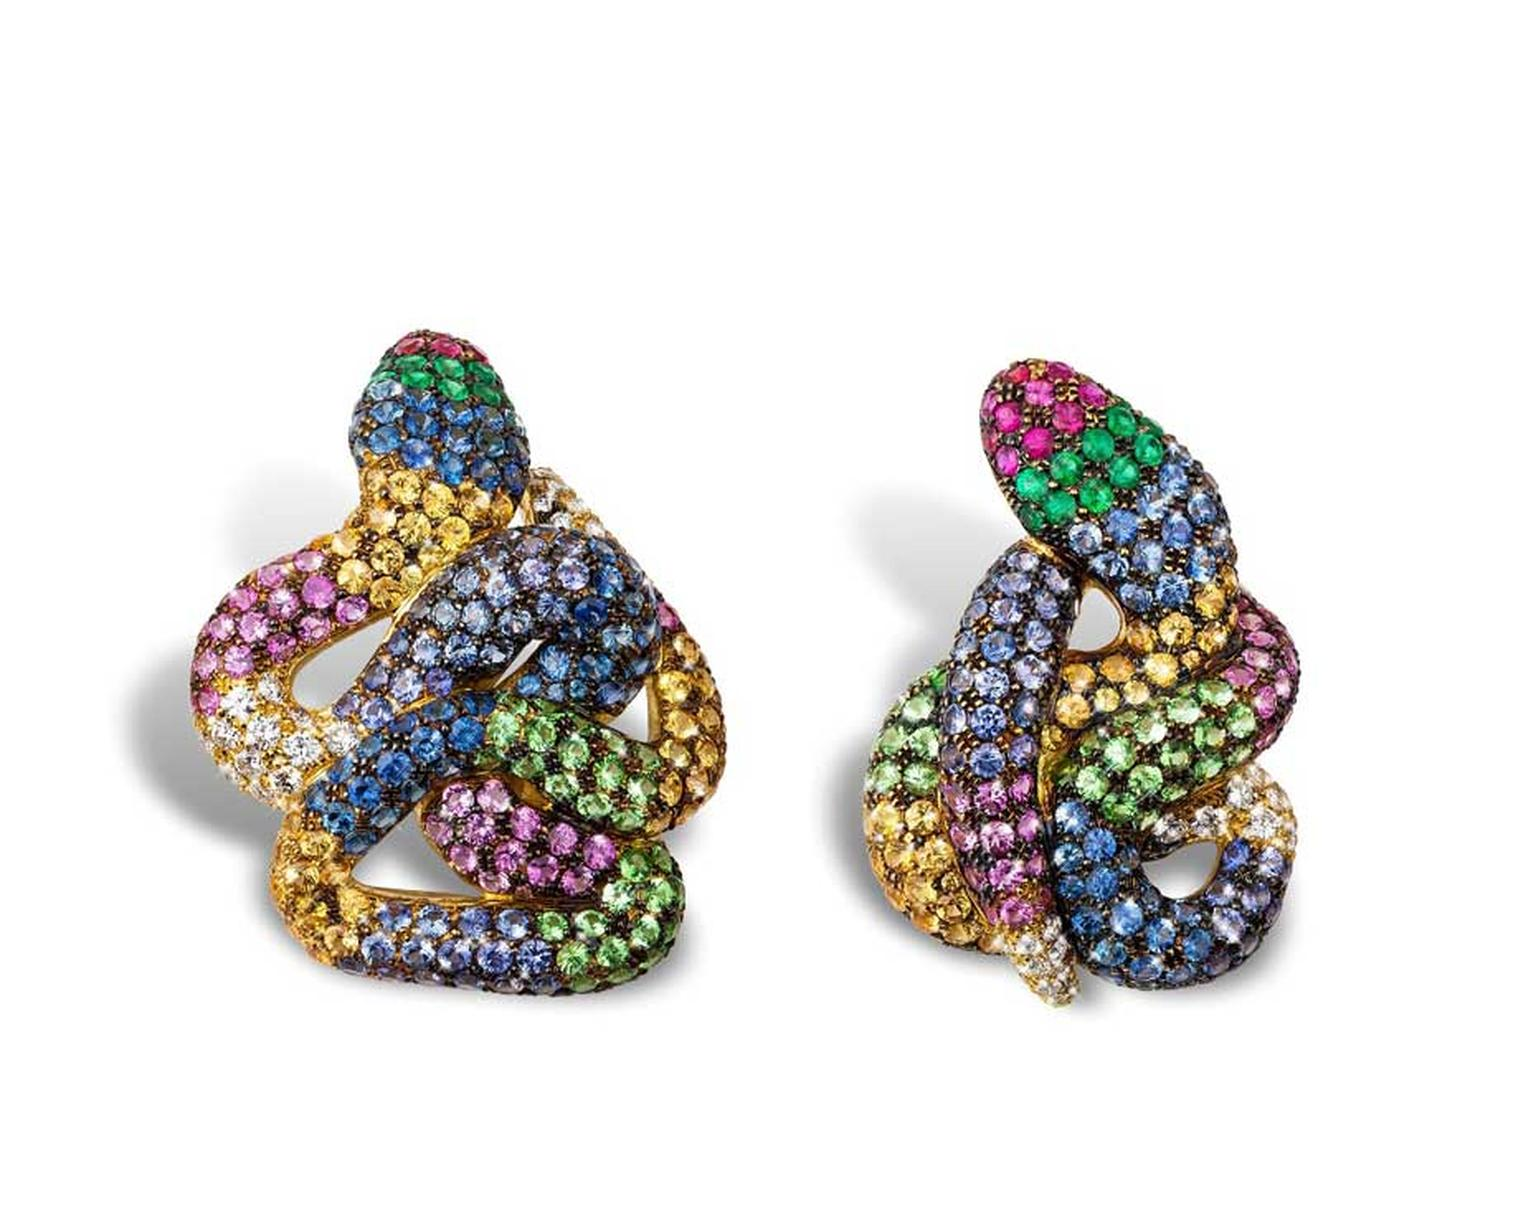 Rosior snake earrings adorned with a colourful mix of diamonds, sapphires, rubies, emeralds and tsavorites.